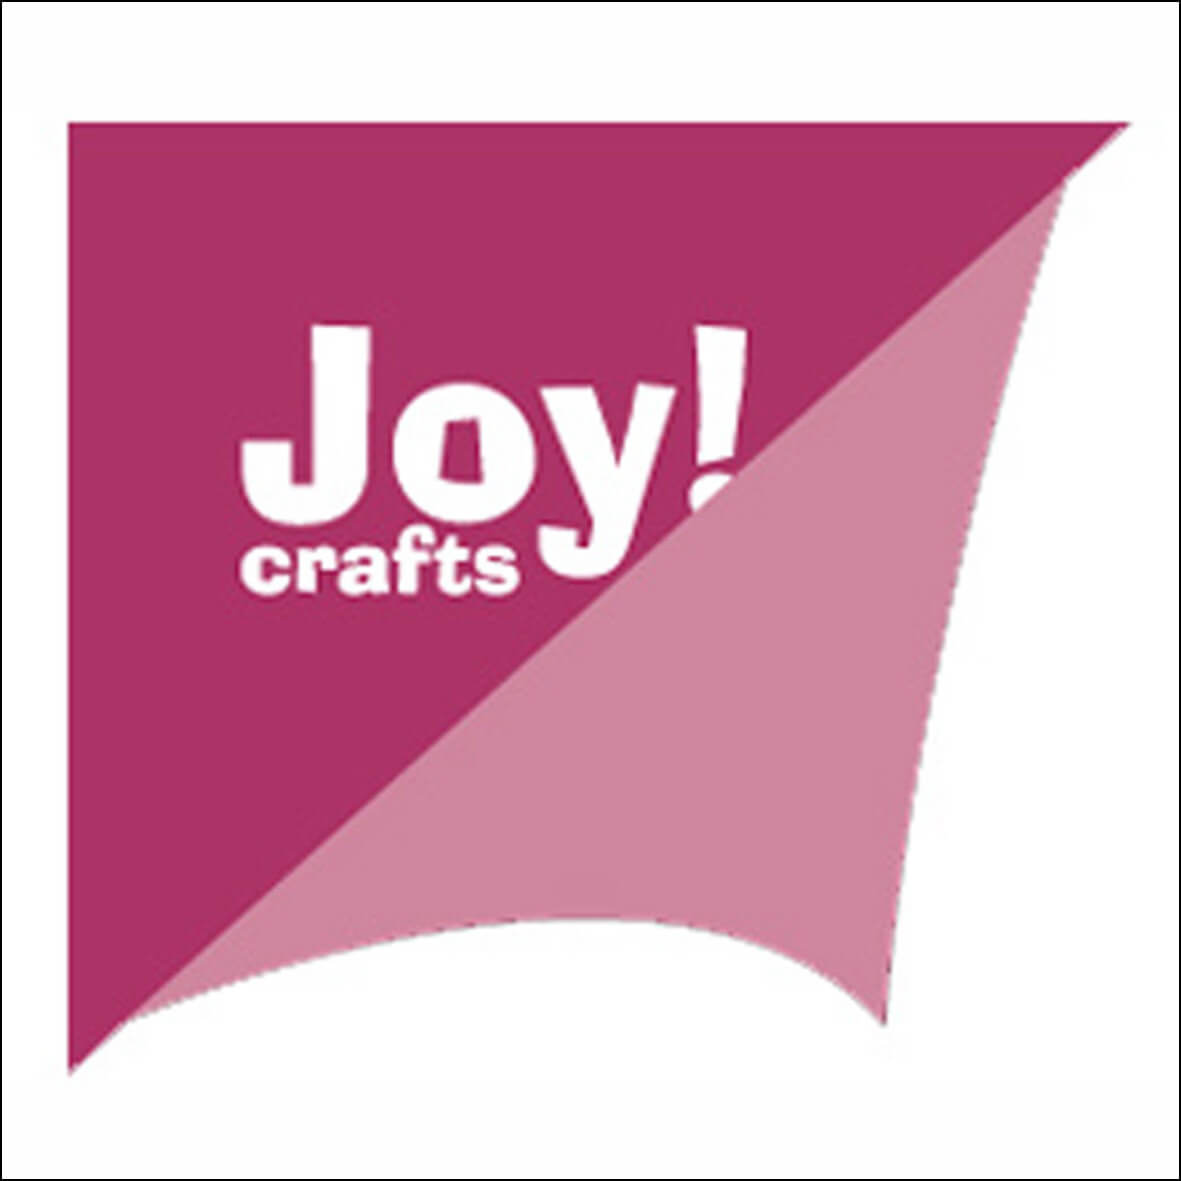 Joy Crafts!